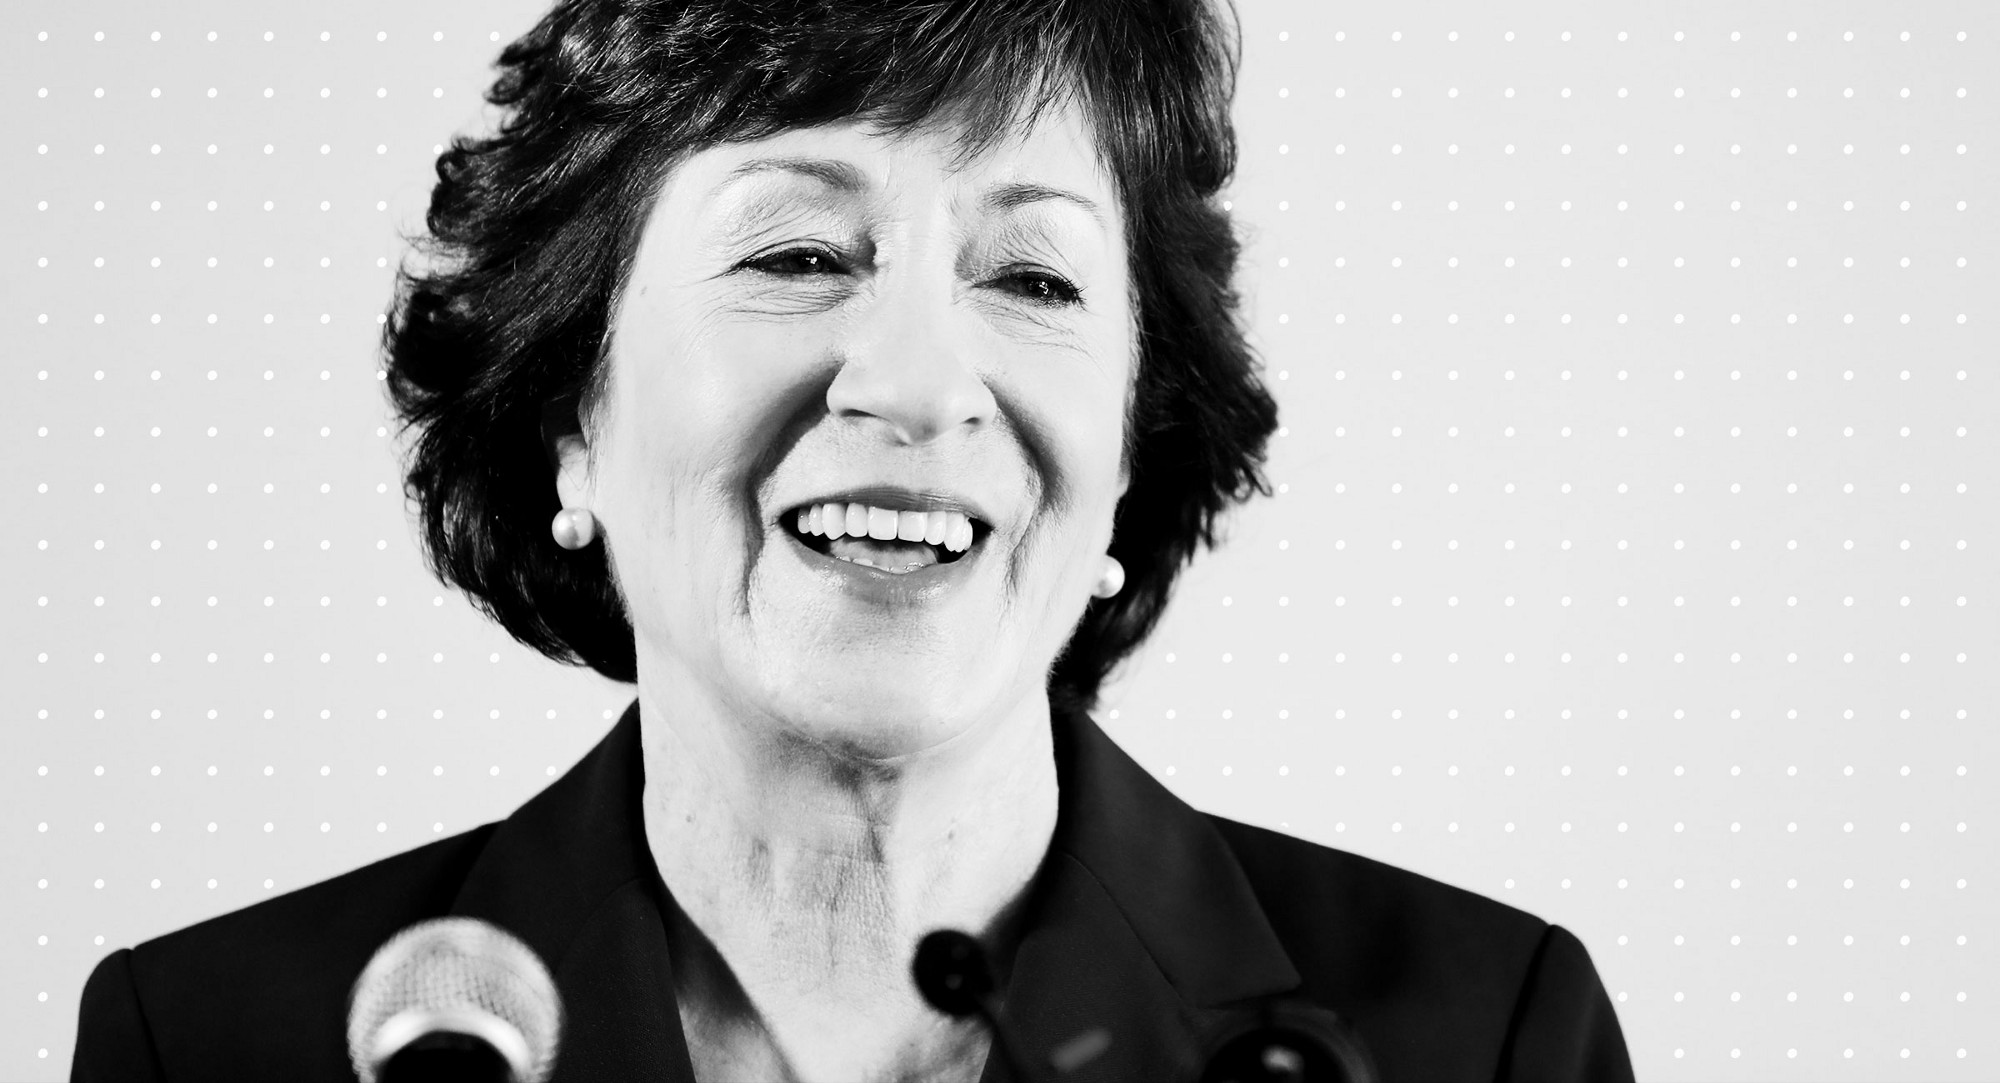 Sen. Collins to announce this morning whether she will run for governor